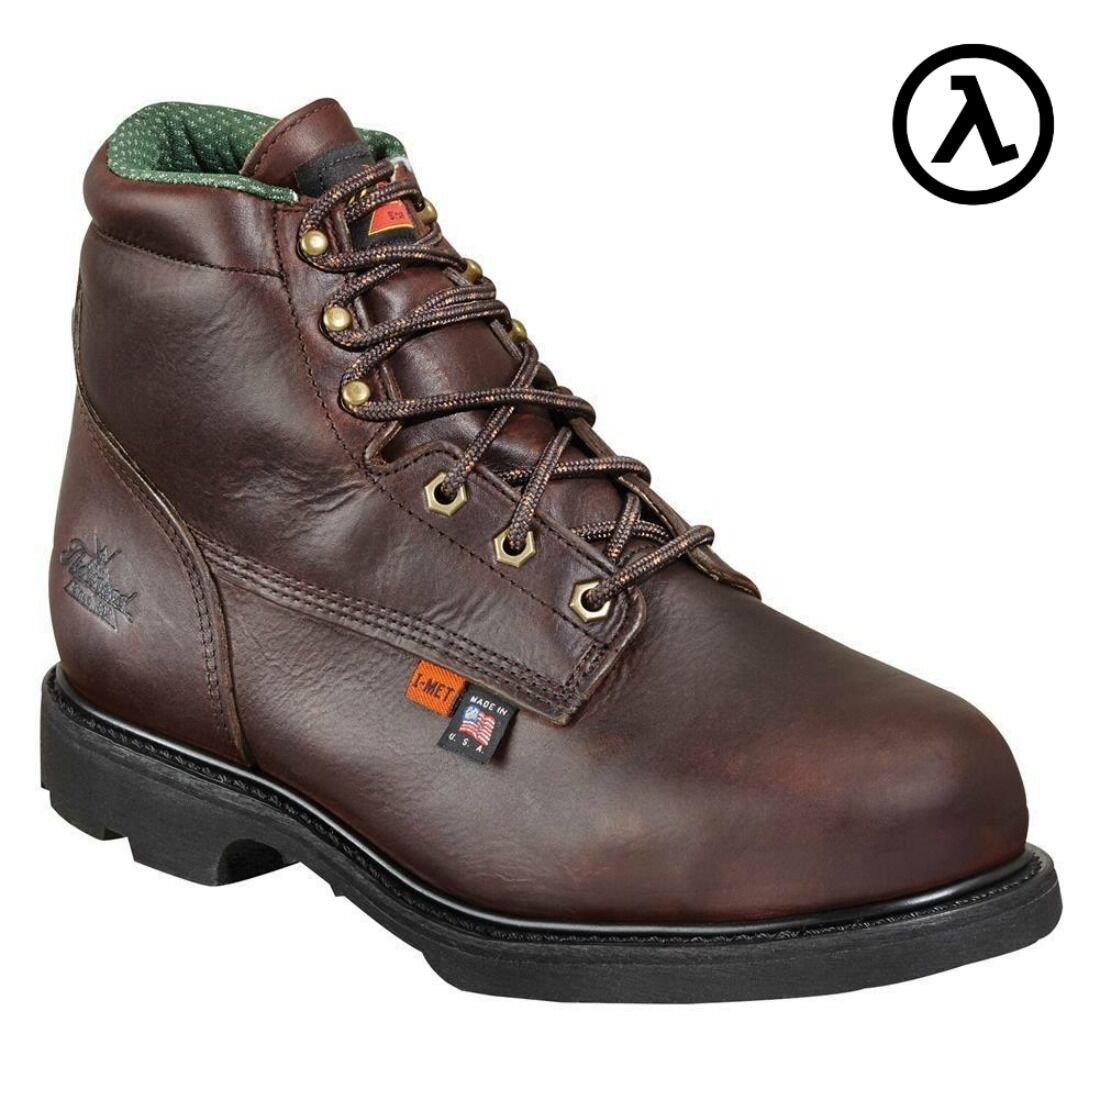 THOROGOOD INTERNAL METATARSAL STEEL TOE EH WORK BOOTS ALL 804-4541 - ALL BOOTS SIZES ef6eeb